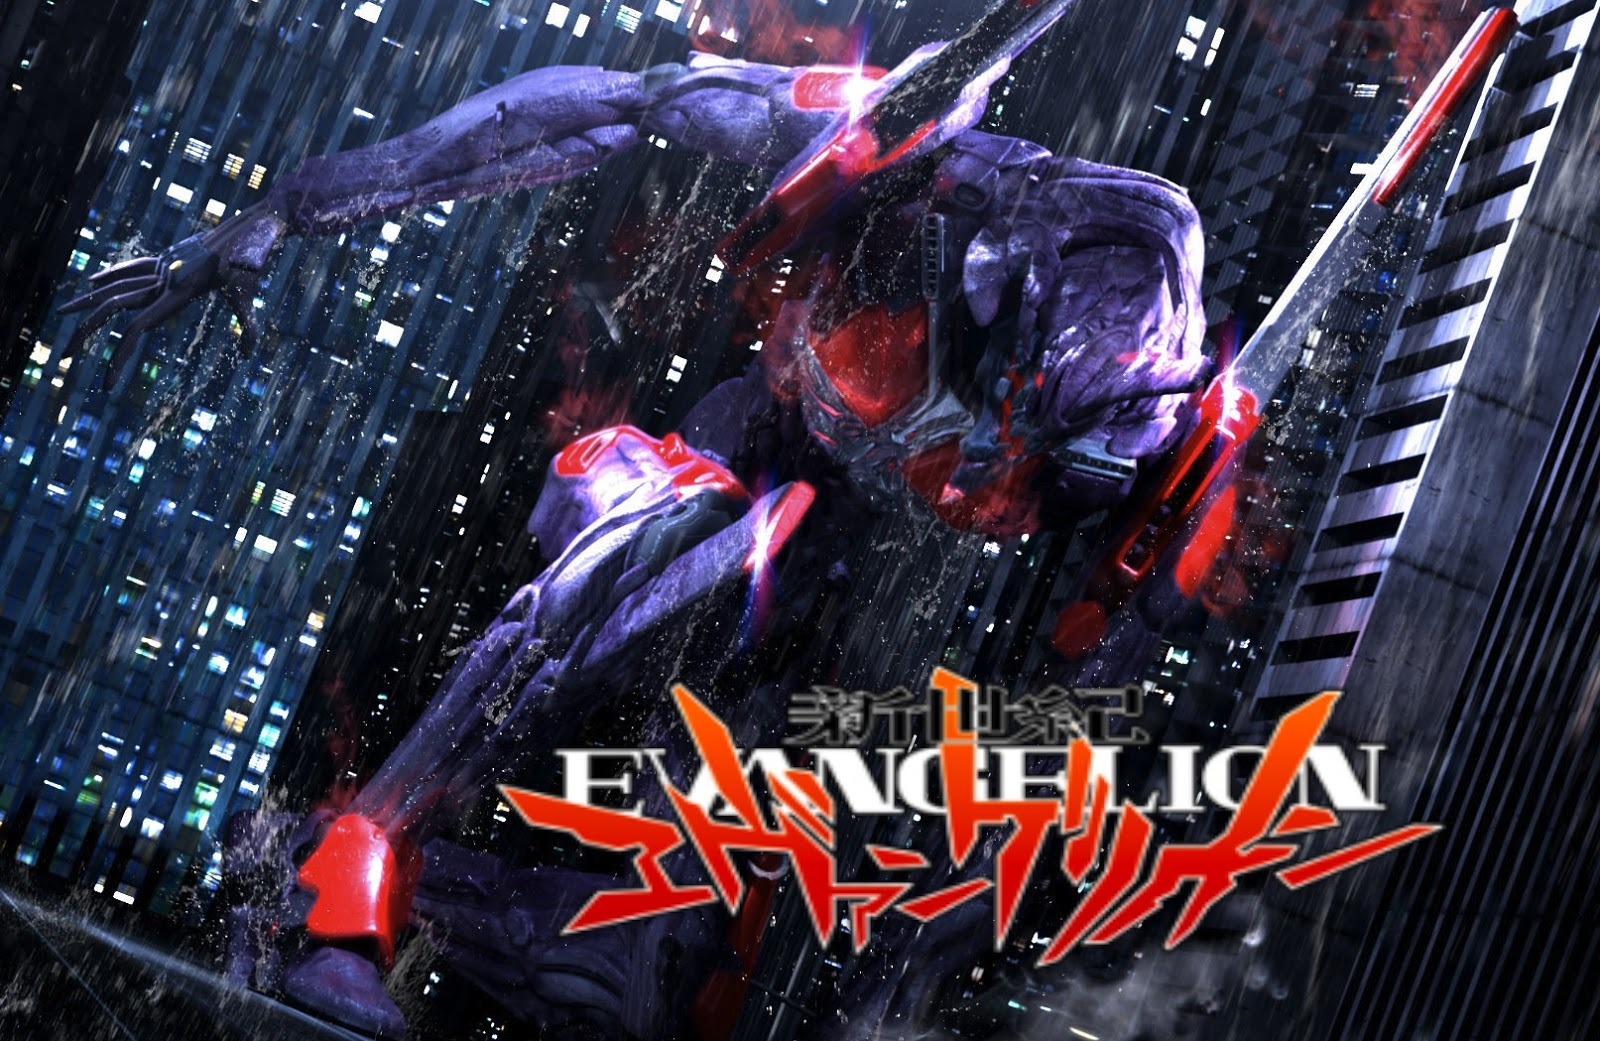 evangelion live action movie video search engine at